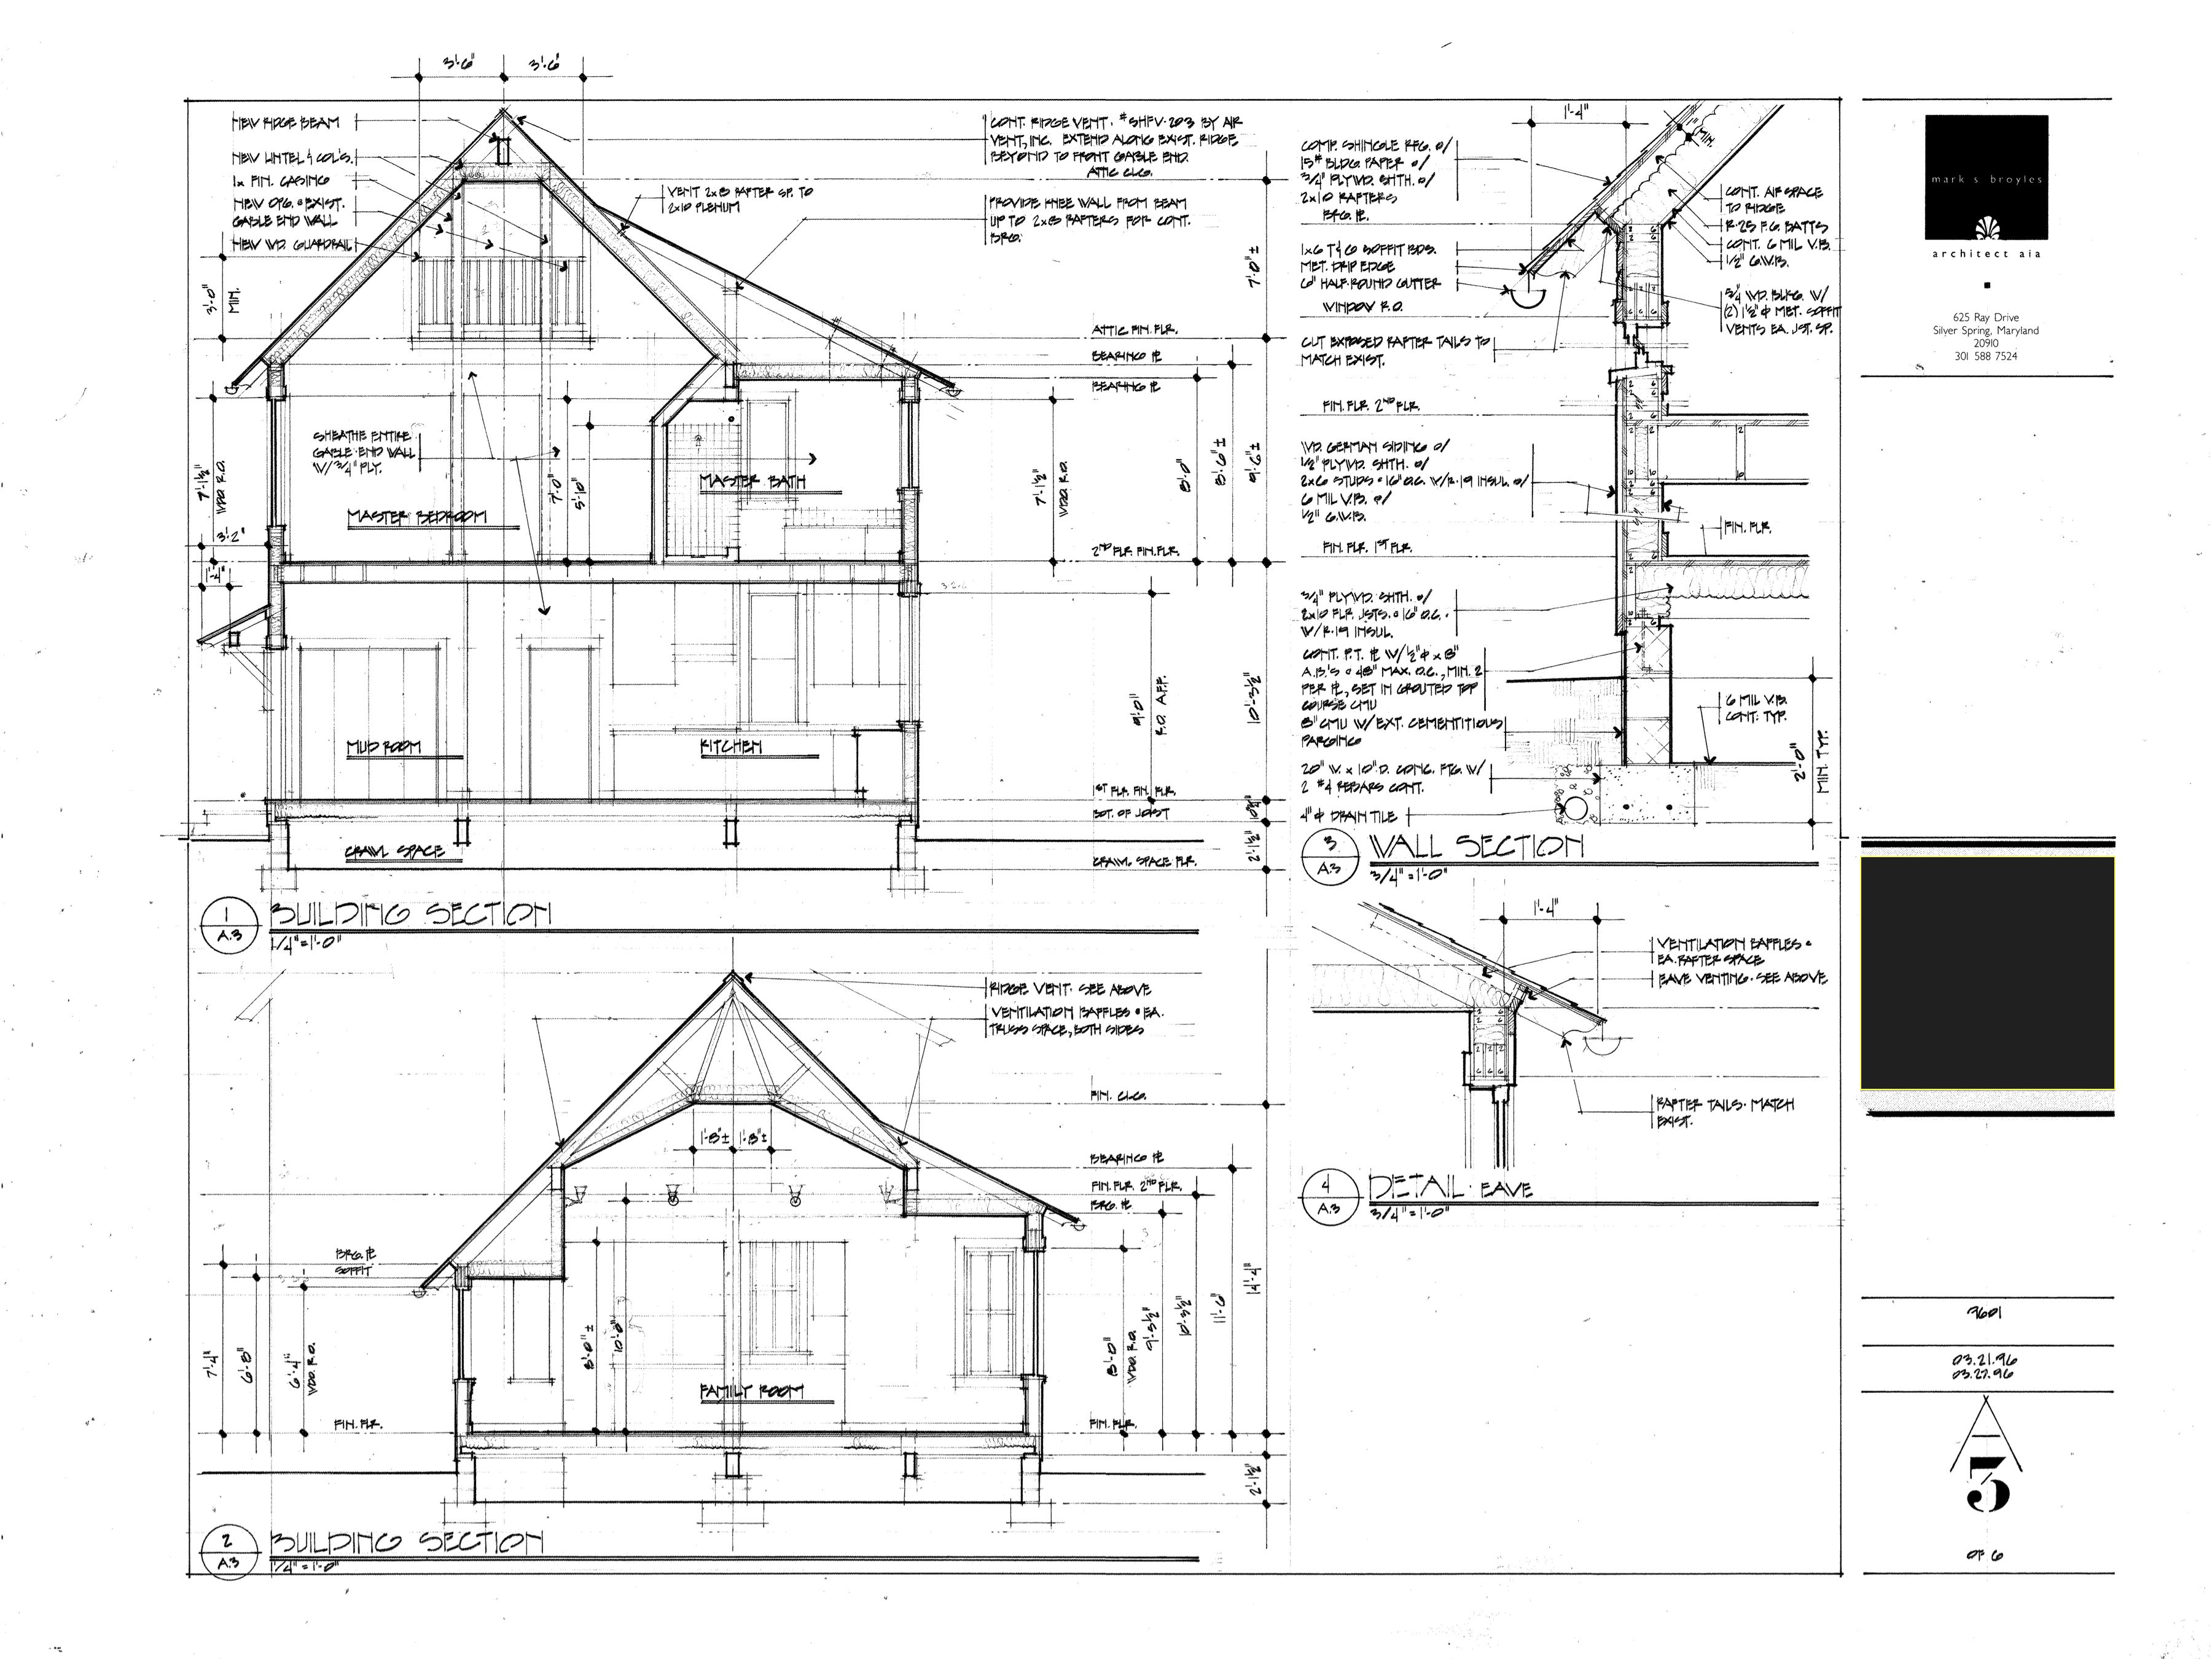 Residential Addition Working Drawing Building Sections